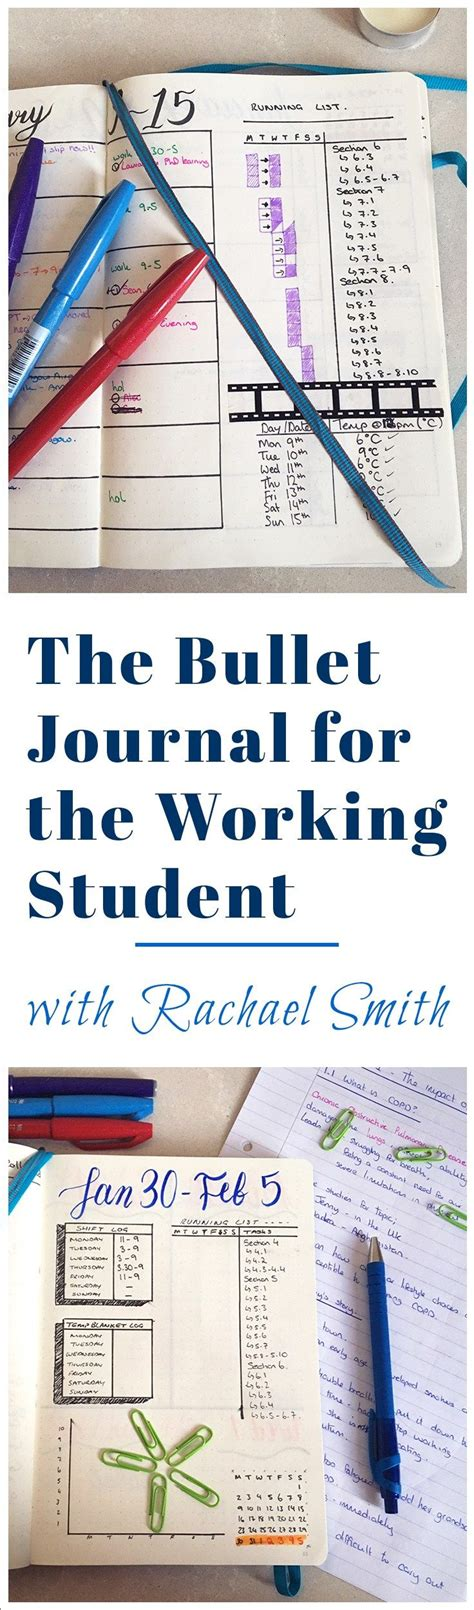 homework design journal the bullet journal for the working student with rachael